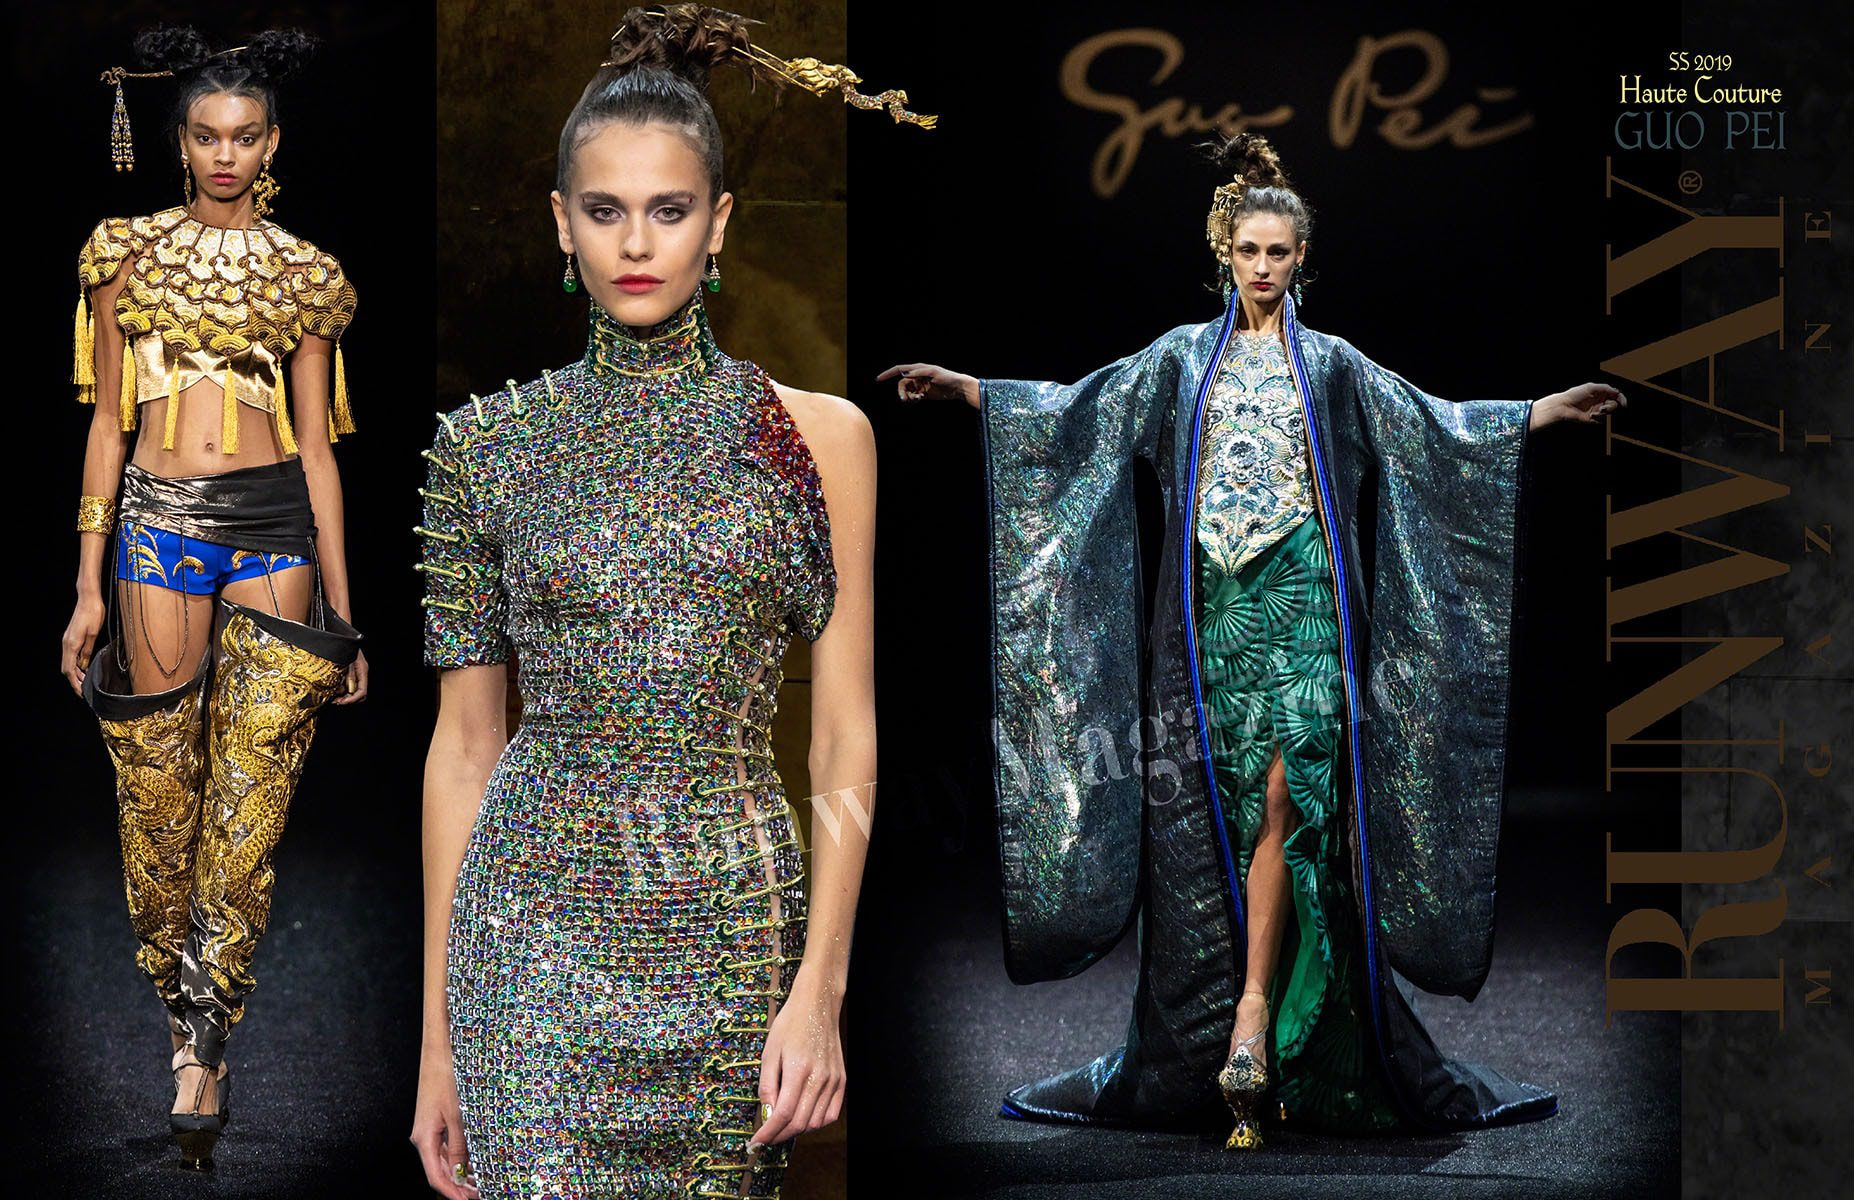 Guo Pei Haute Couture Spring-Summer 2019 by RUNWAY MAGAZINE